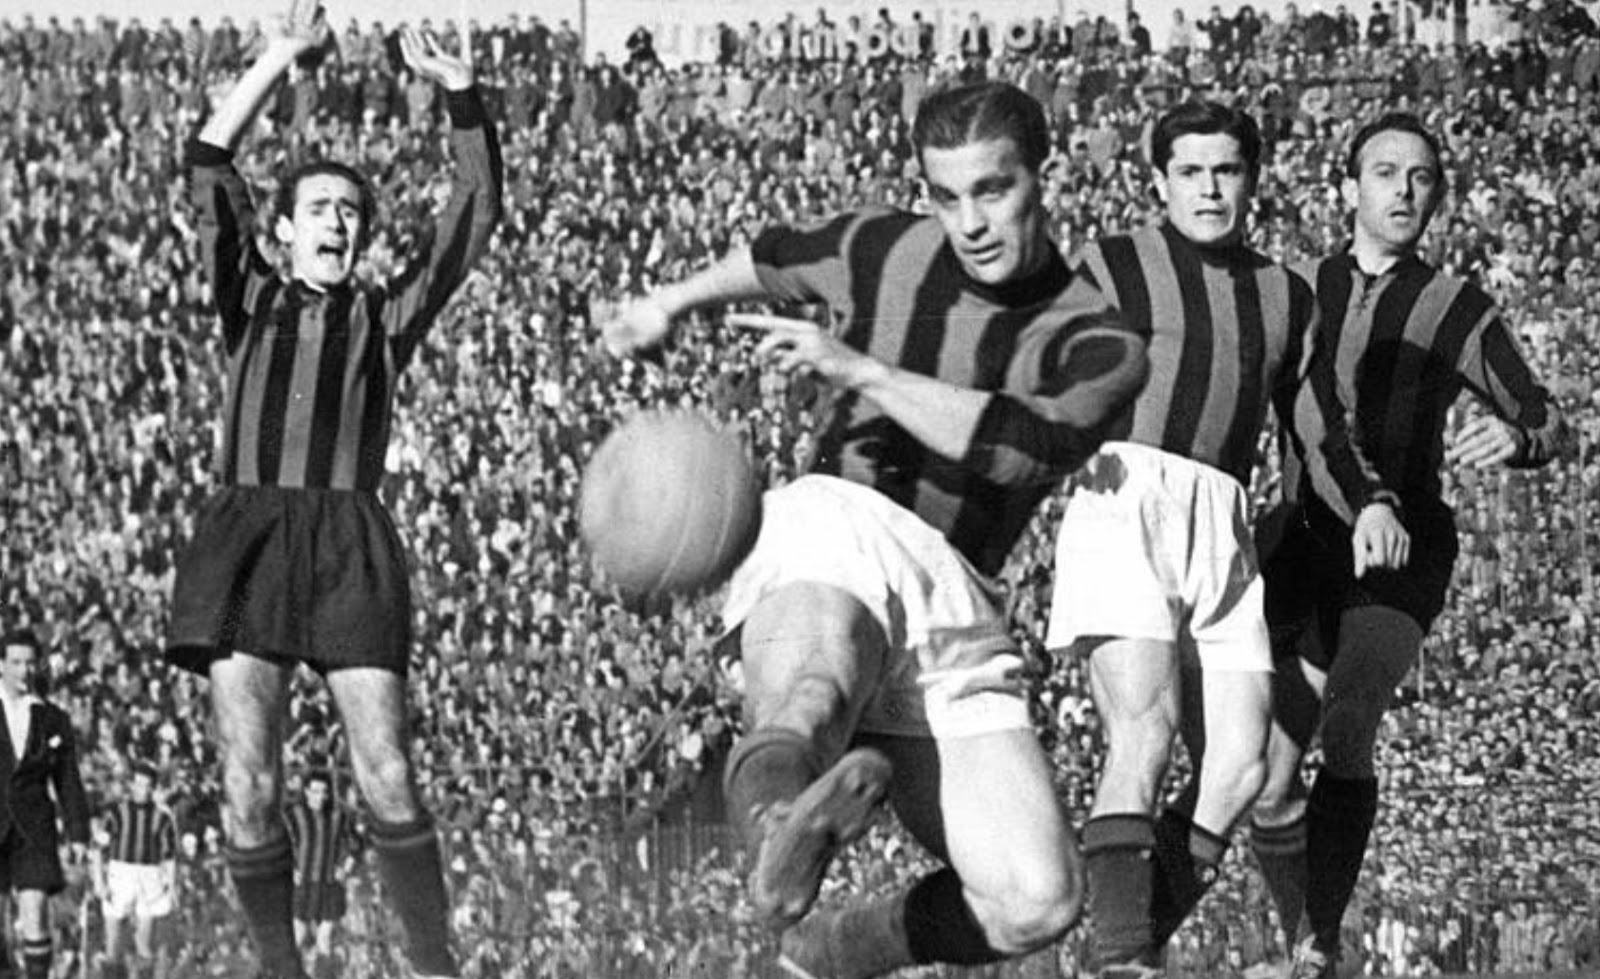 third highest goal scorer in Serie A history is (Gunnar Nordahl)